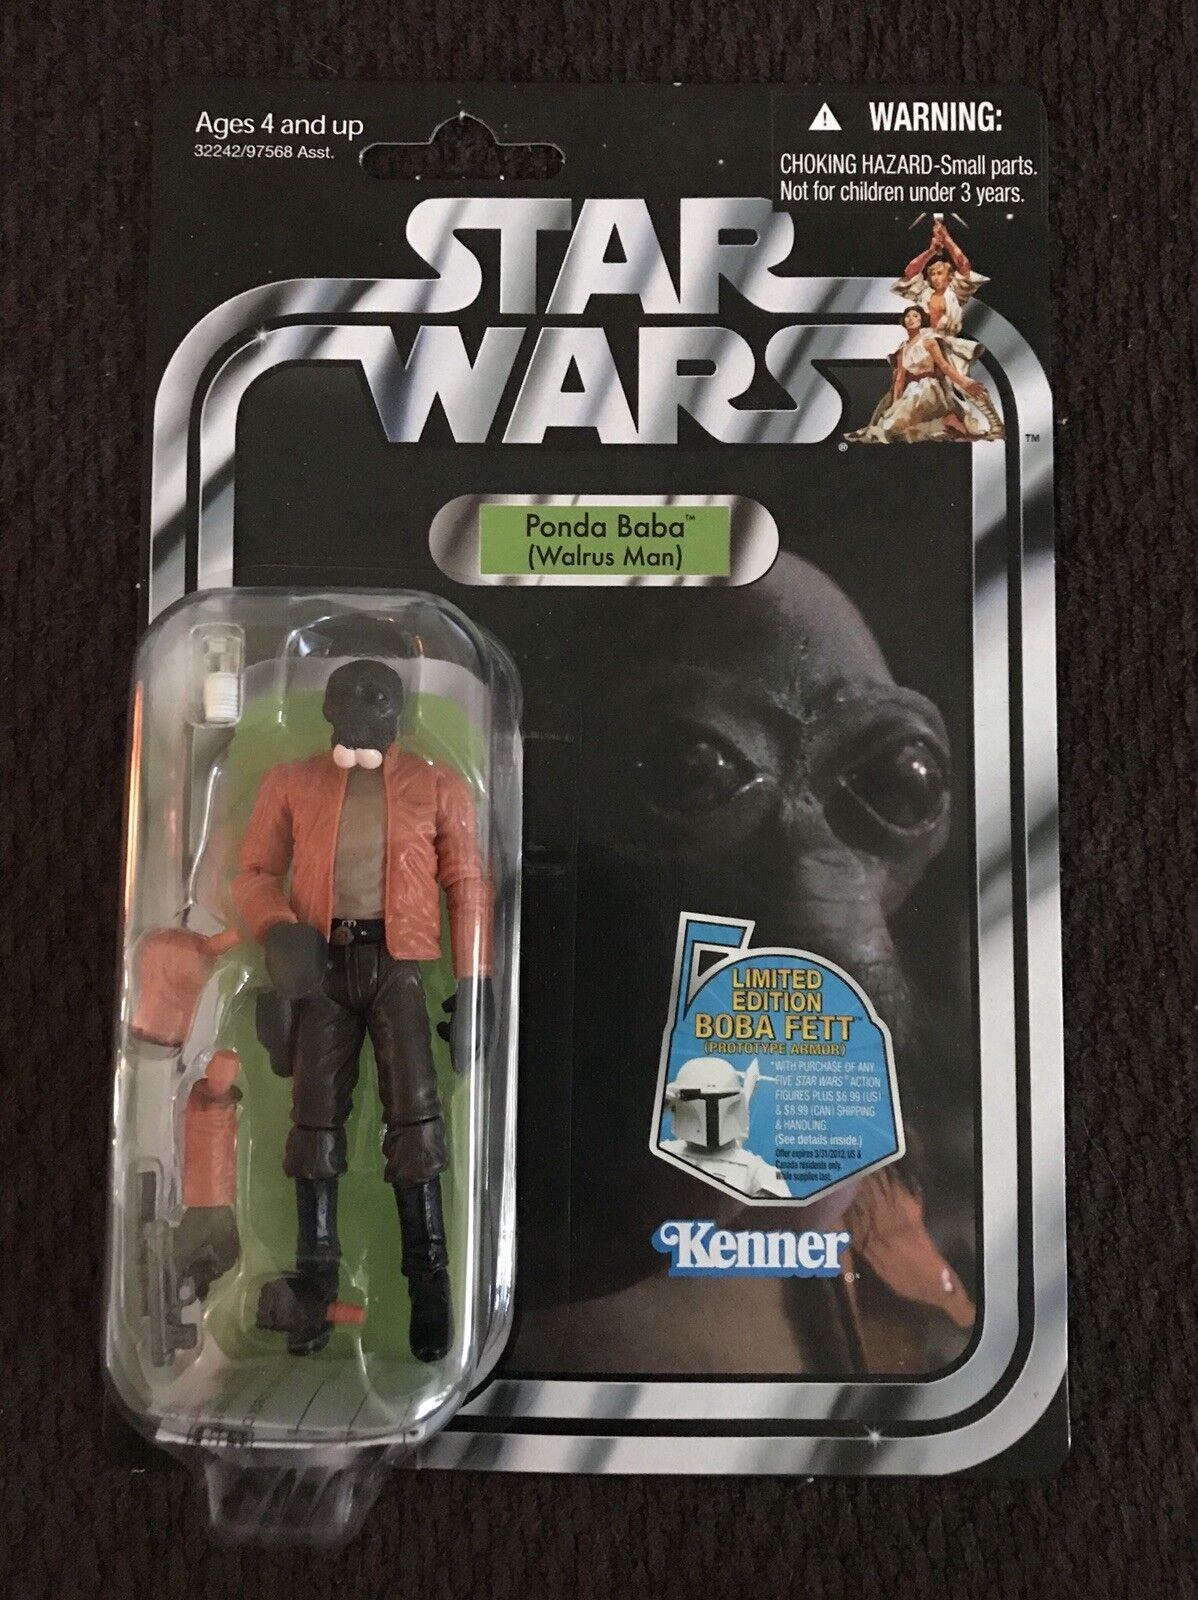 Star Wars The Vintage Collection Ponda Baba W Boba Fett Offer Figure VC70 NEW